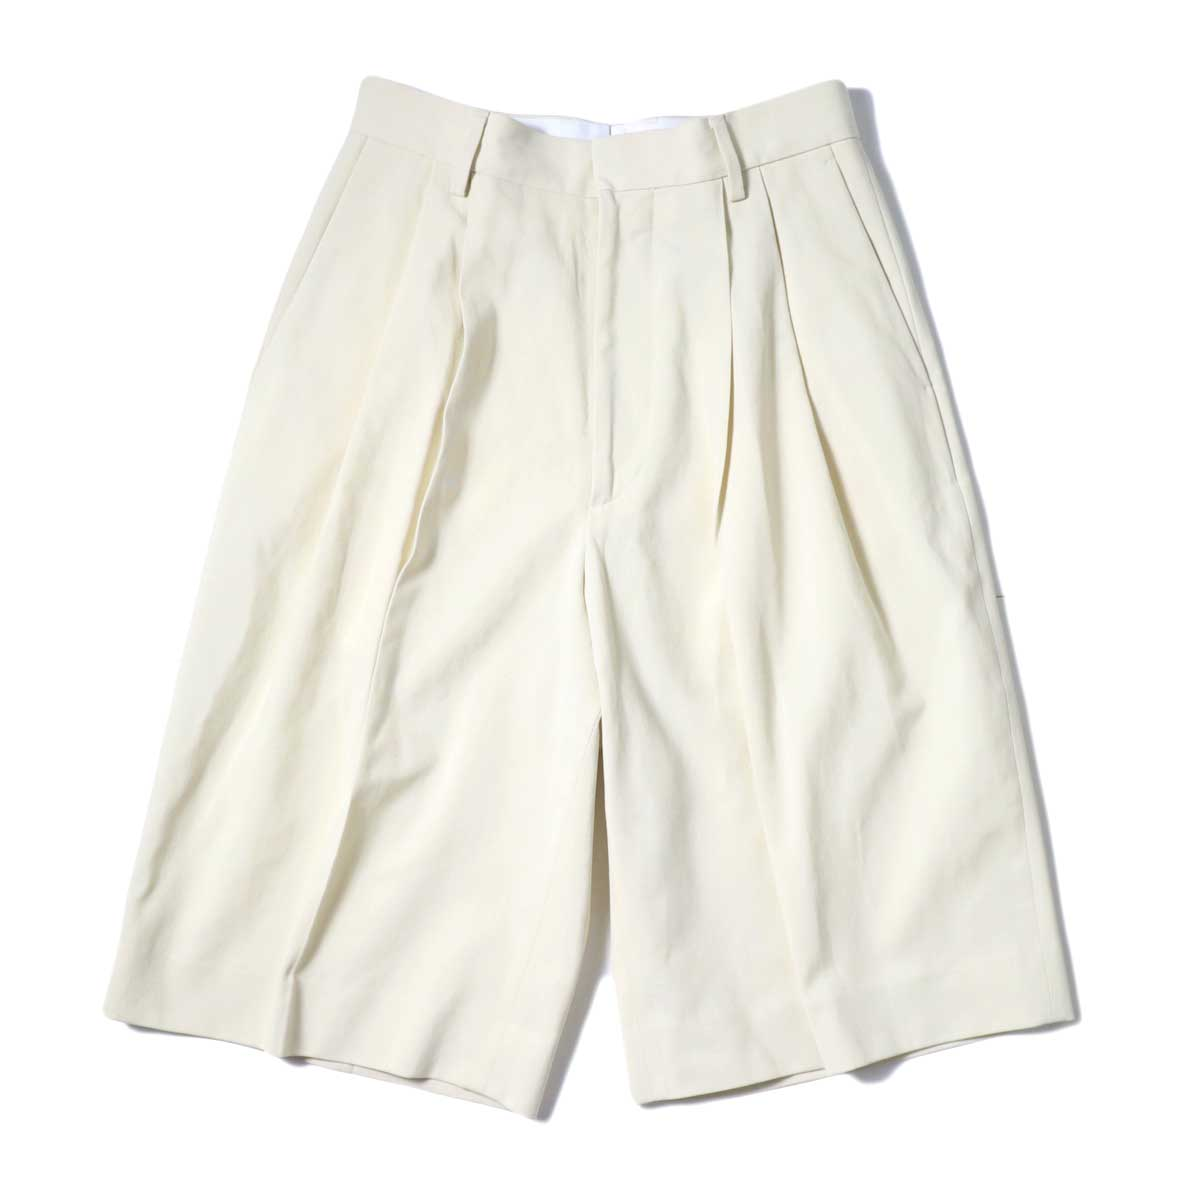 YLEVE / HIGH COUNT COTTON KERSEY SHORTS (Straw Beige)